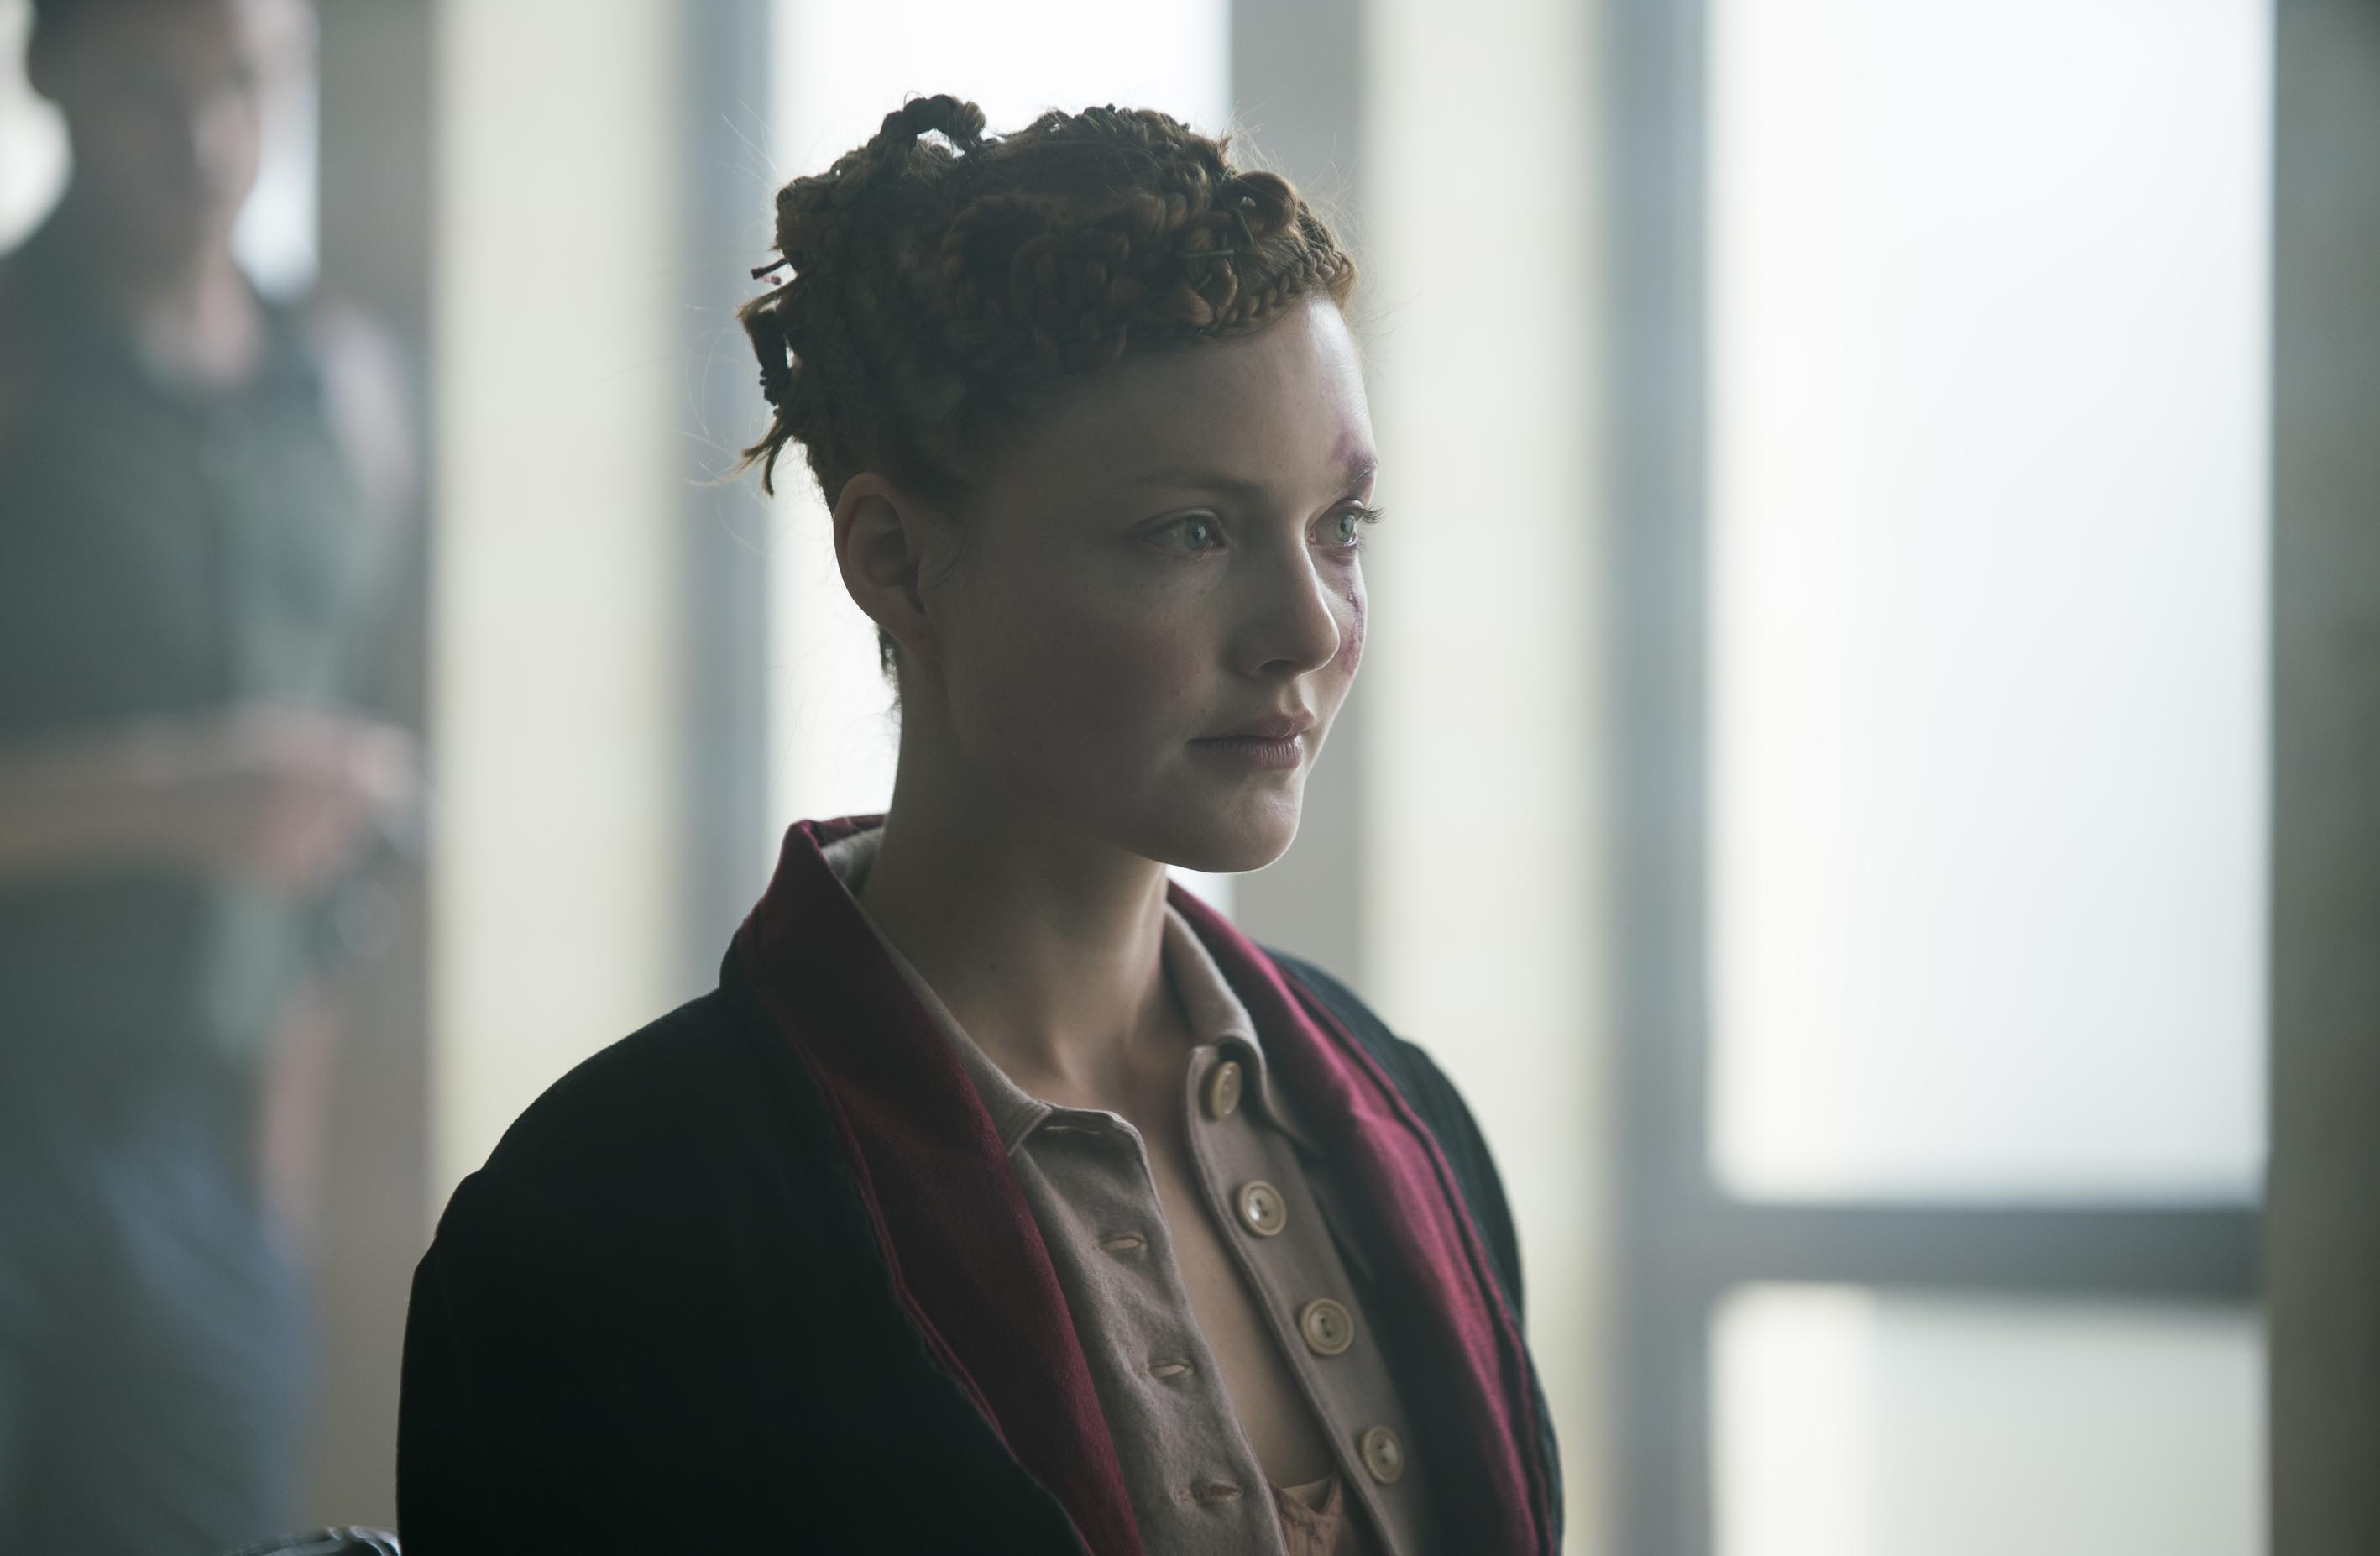 Holliday Grainger in Electric Dreams